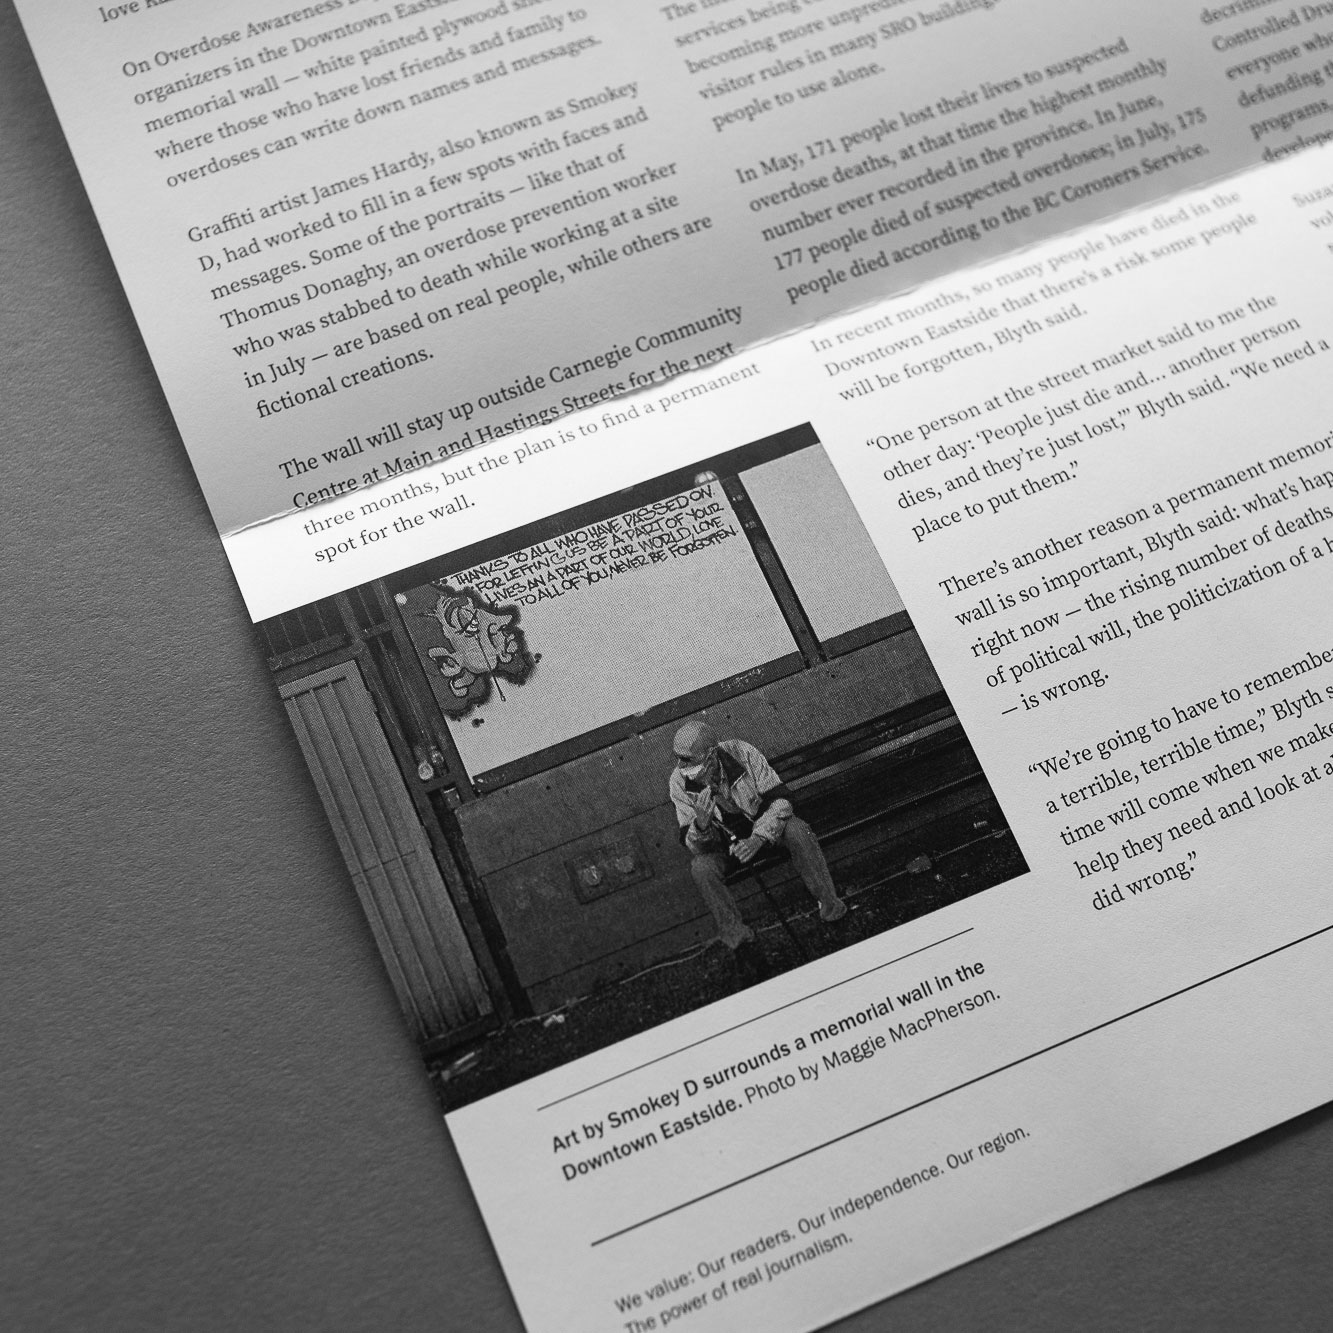 The Tyee: going deep on BC's biggest issues. Design details and layout design for DTES printed newspaper  | www.alicia-carvalho.coma